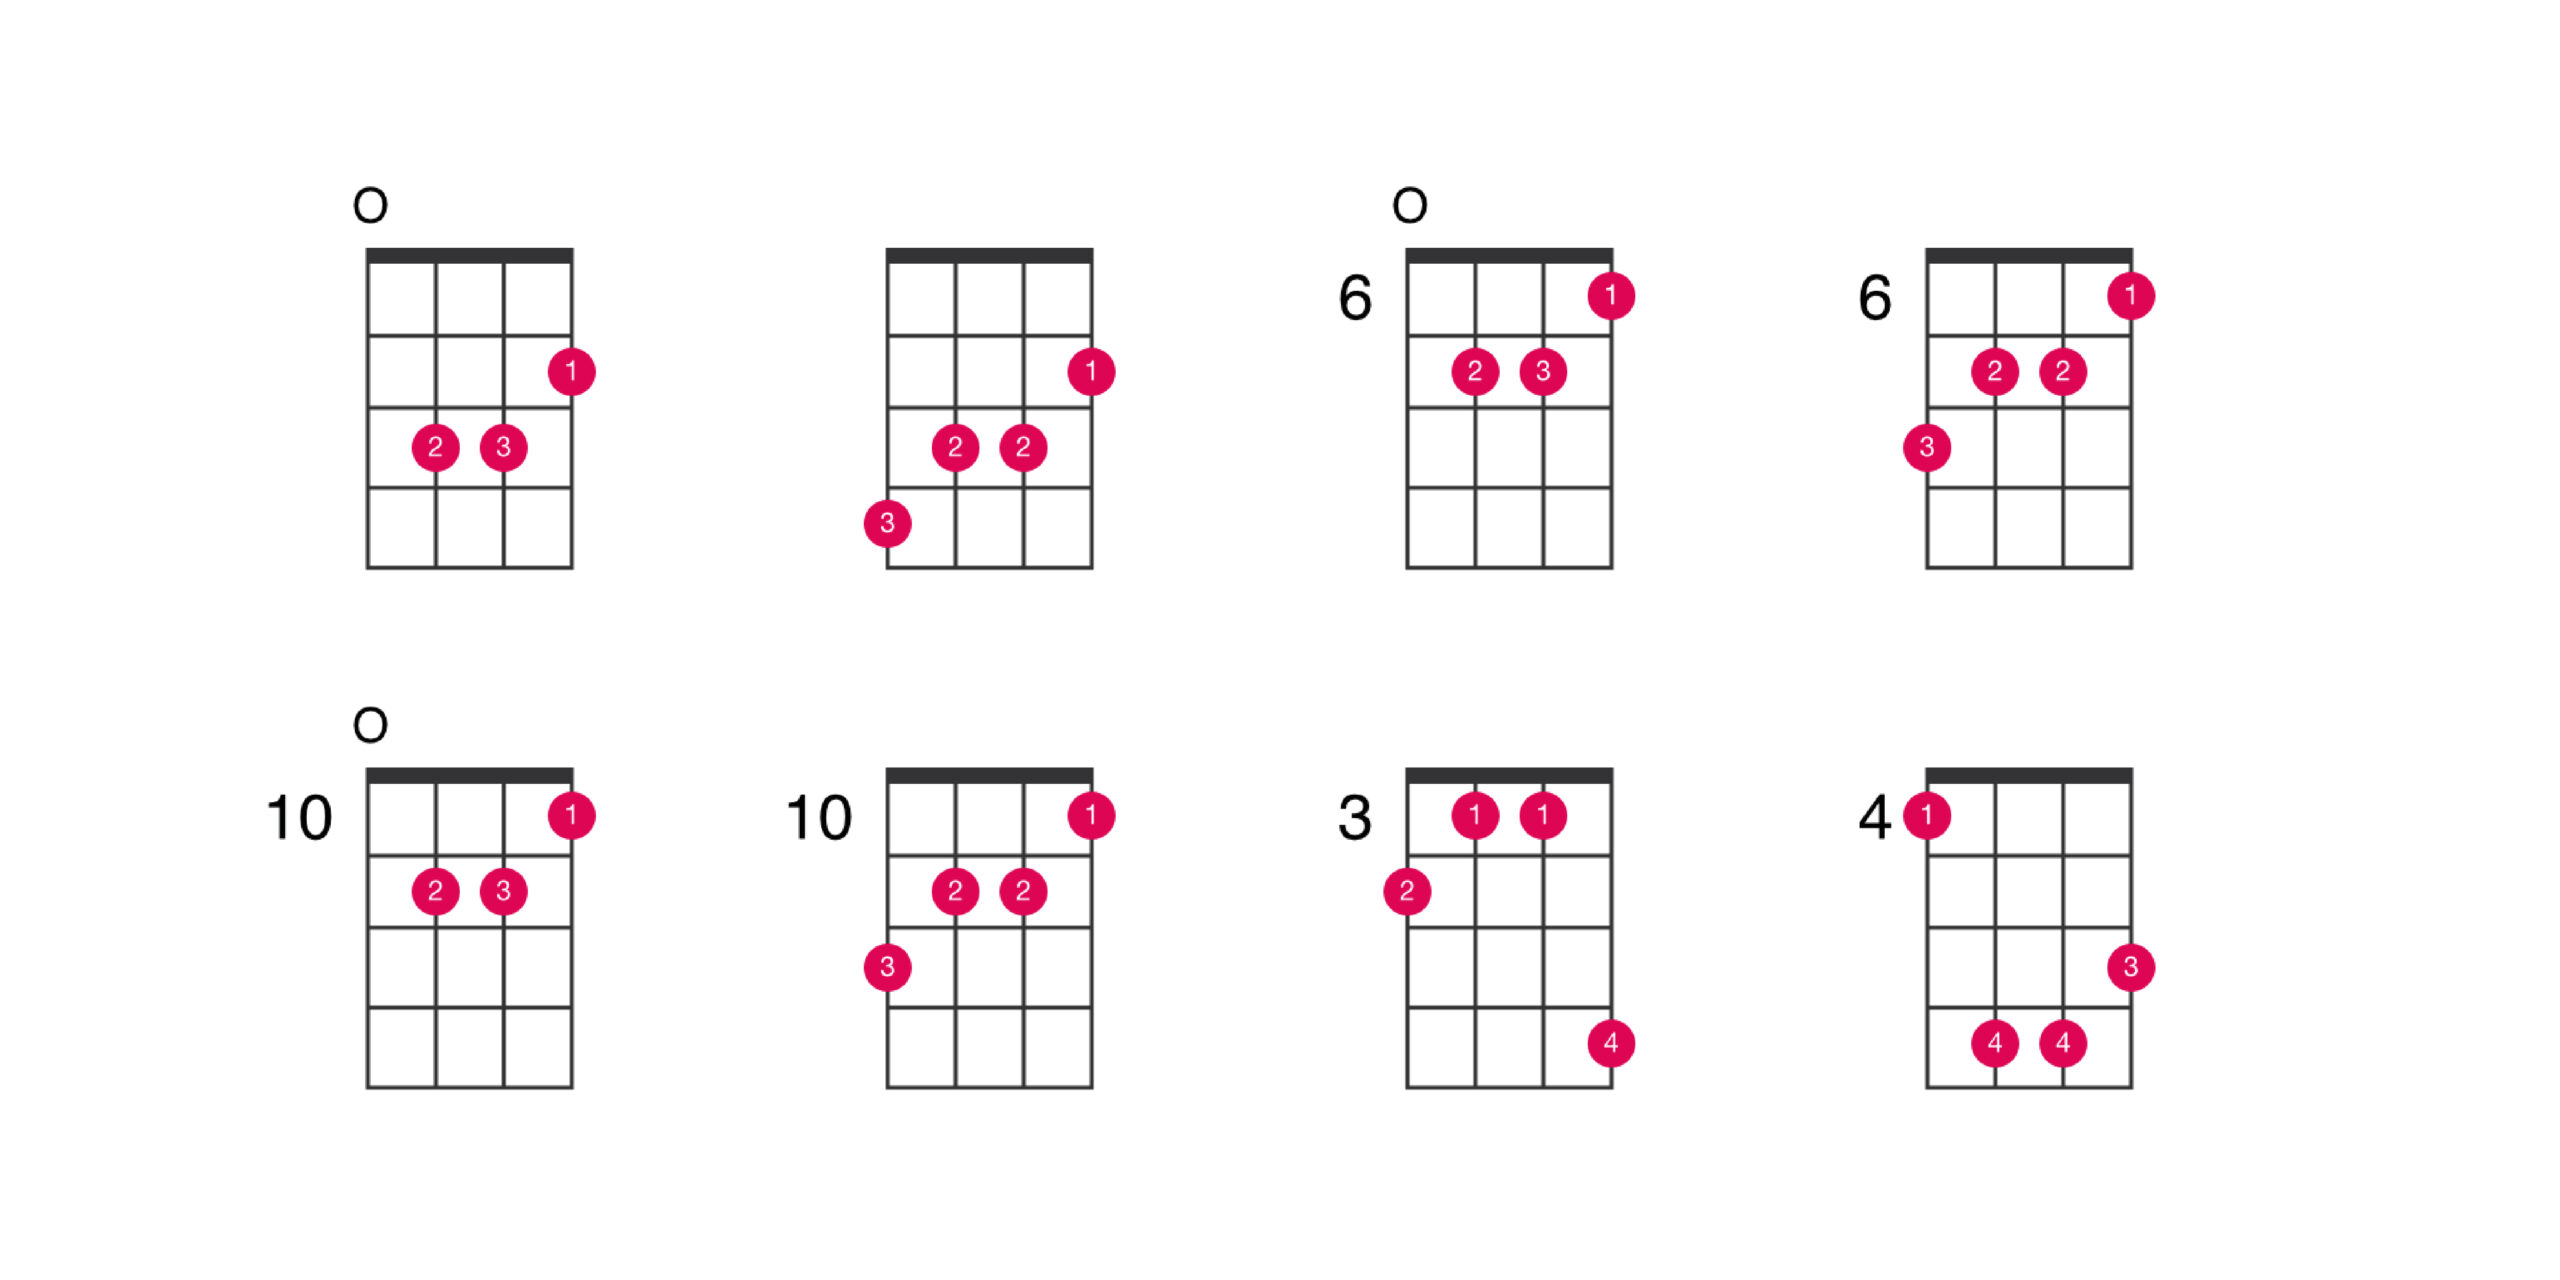 When to Use Augmented Chords